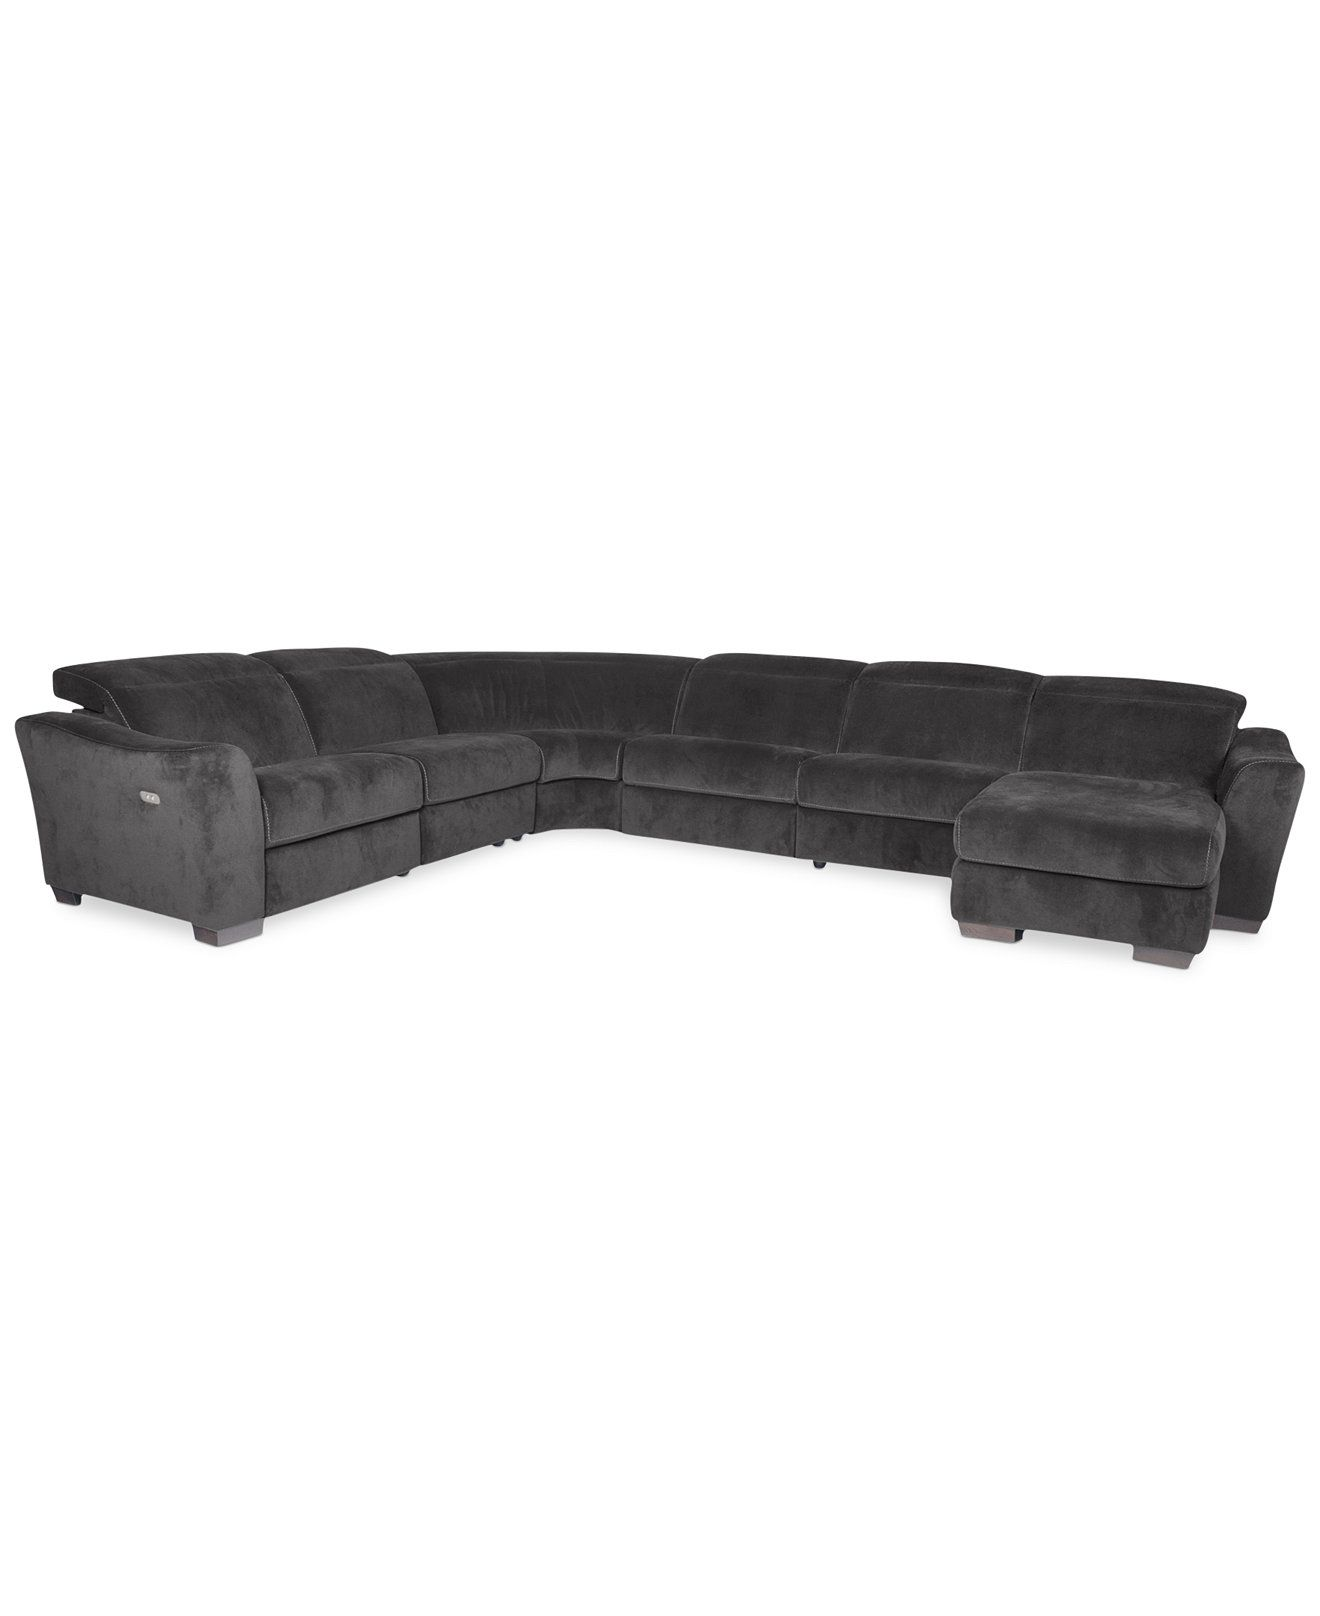 Alessandro Fabric 6 Piece Chaise Sectional Sofa with 2 Power